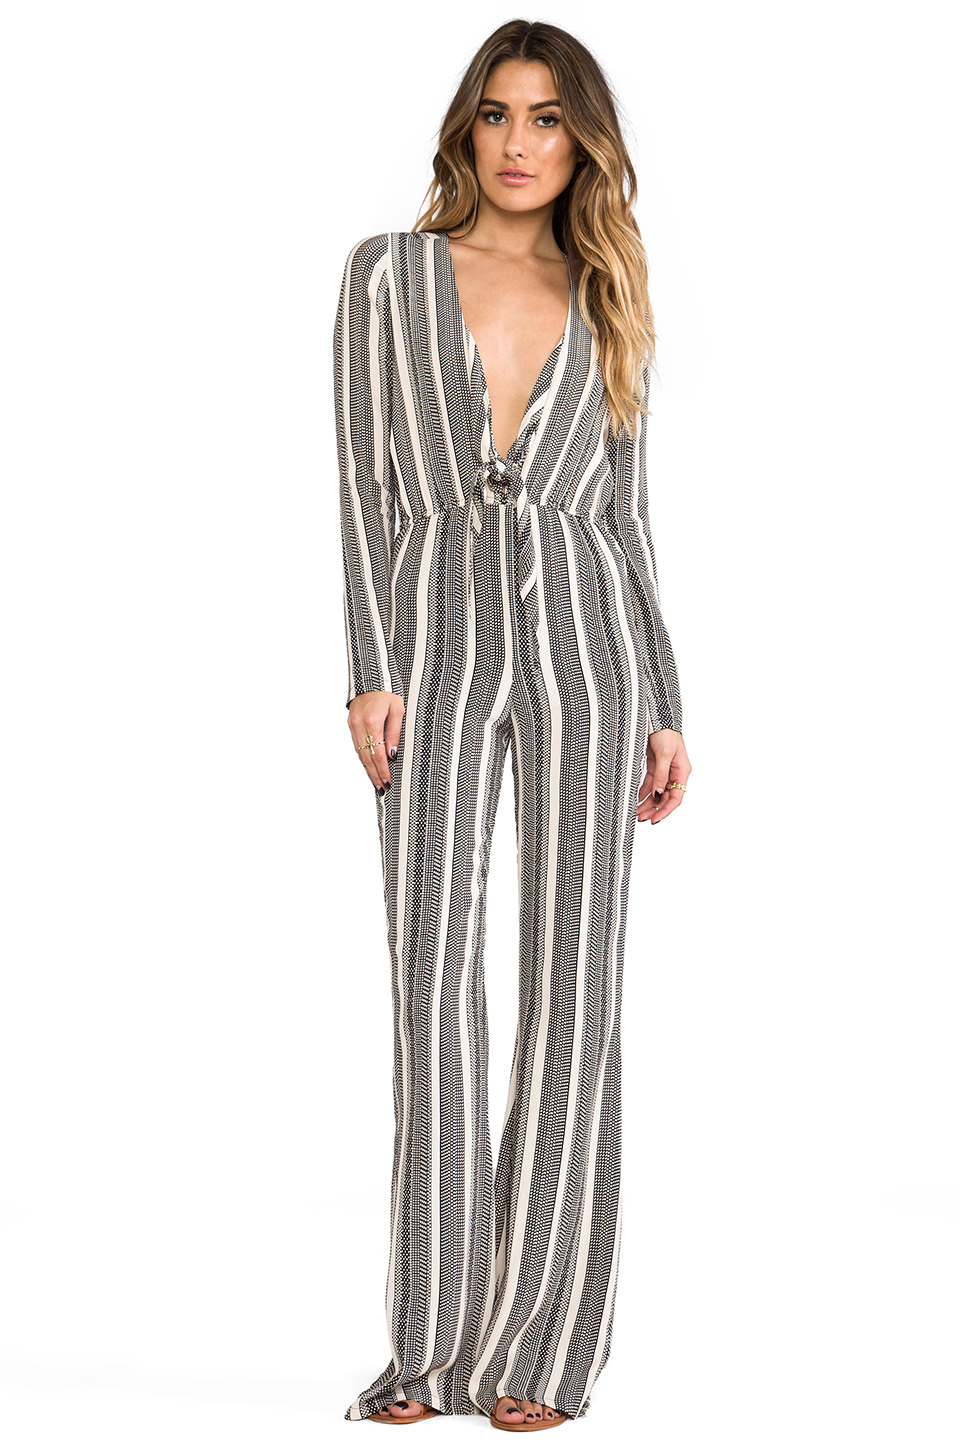 STONE_COLD_FOX Stardust Jumpsuit in Black & Ivory Stripe from REVOLVEclothing.com